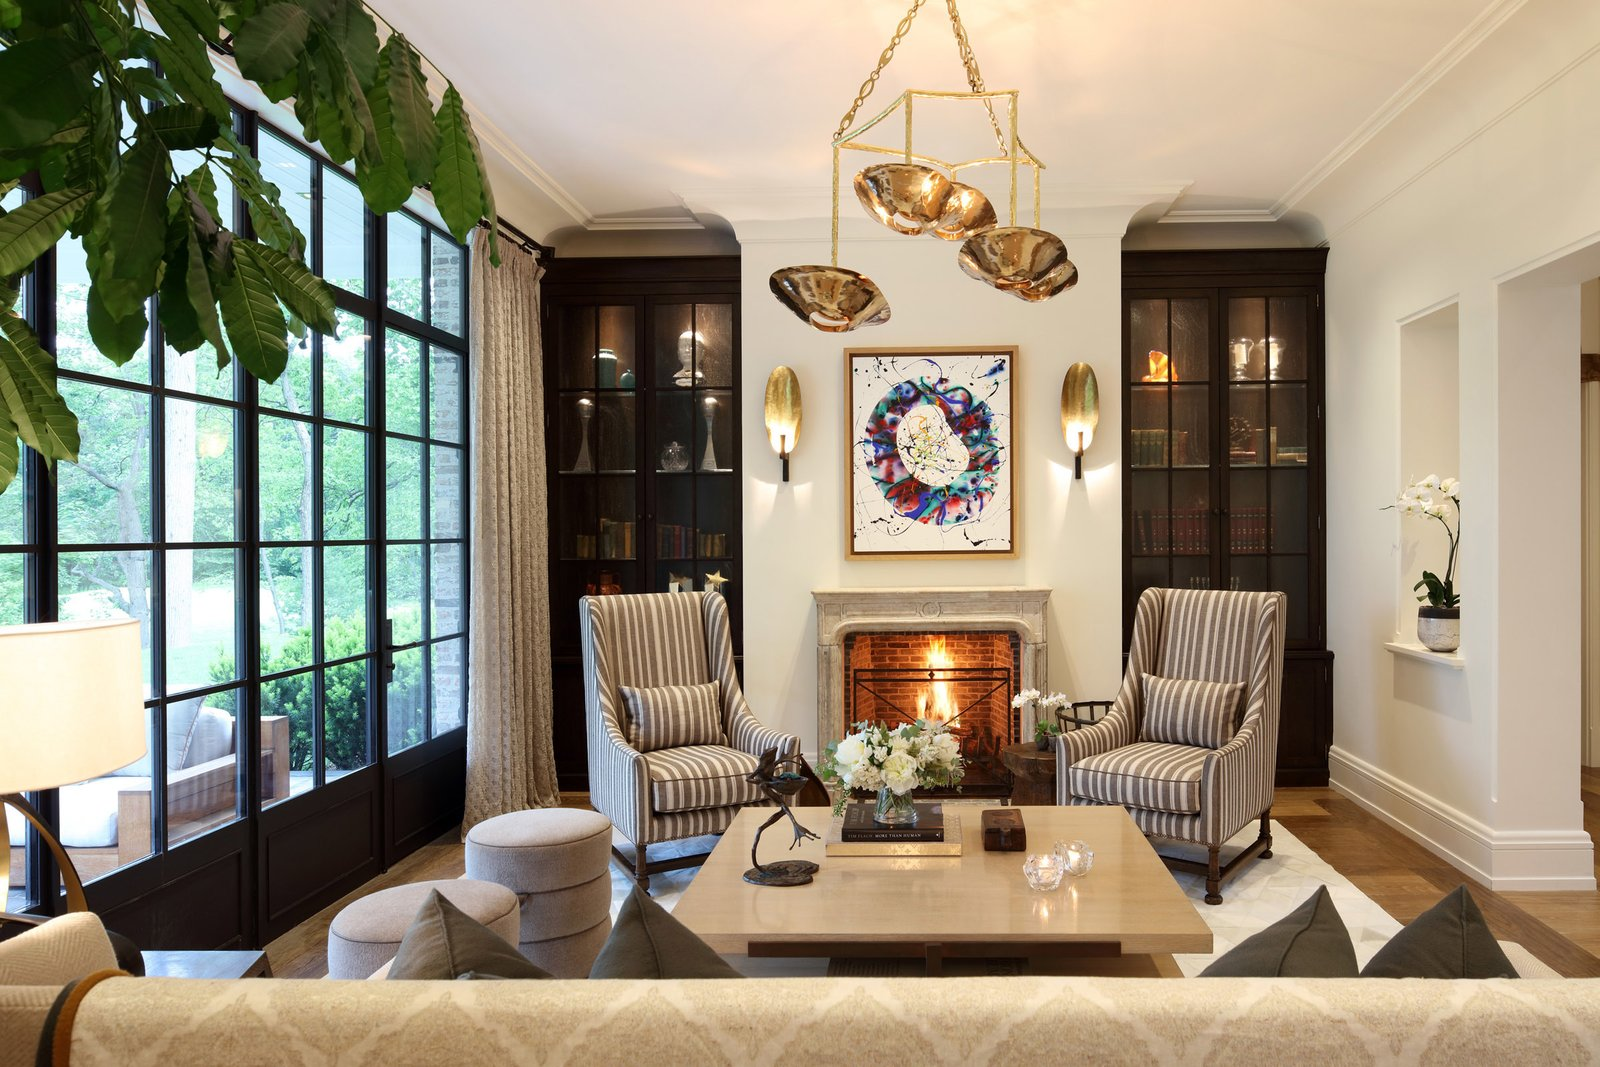 Modern home with Living Room, Coffee Tables, Standard Layout Fireplace, Rug Floor, Pendant Lighting, Medium Hardwood Floor, Chair, Wall Lighting, and Sofa. Photo 2 of A Richard Landry-Designed Home in Massachusetts Asks $39.5M